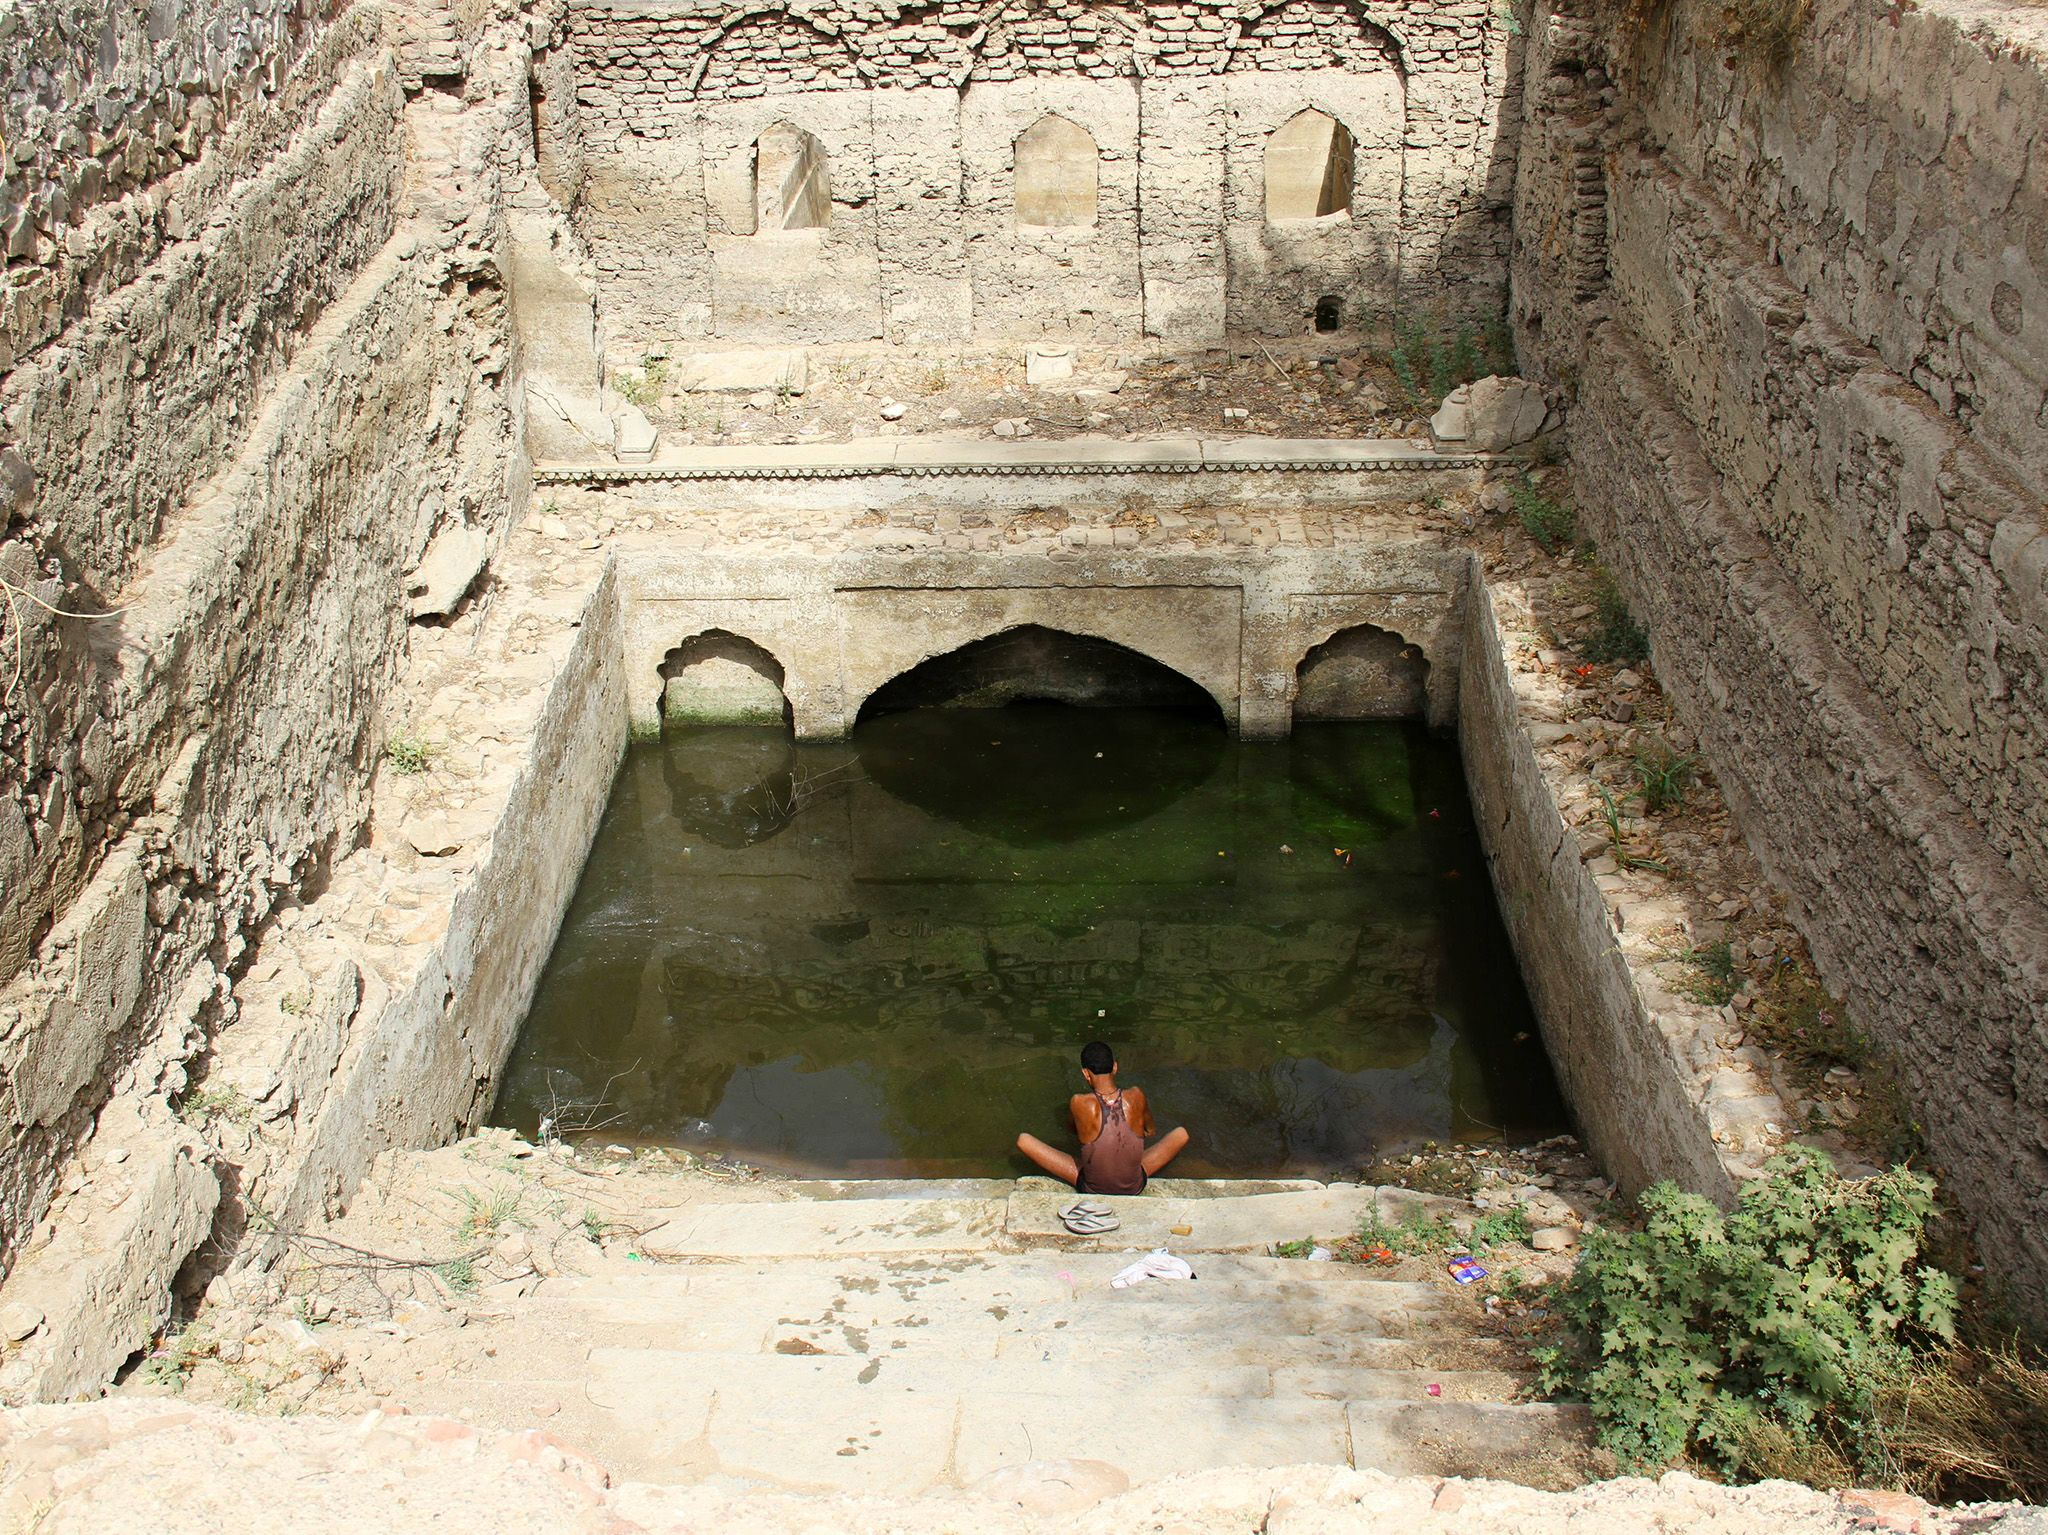 Jaipur, India: Man sitting on the banks of a step well in Jaipur, India. This image is from Parched. [Photo of the day - August 2017]